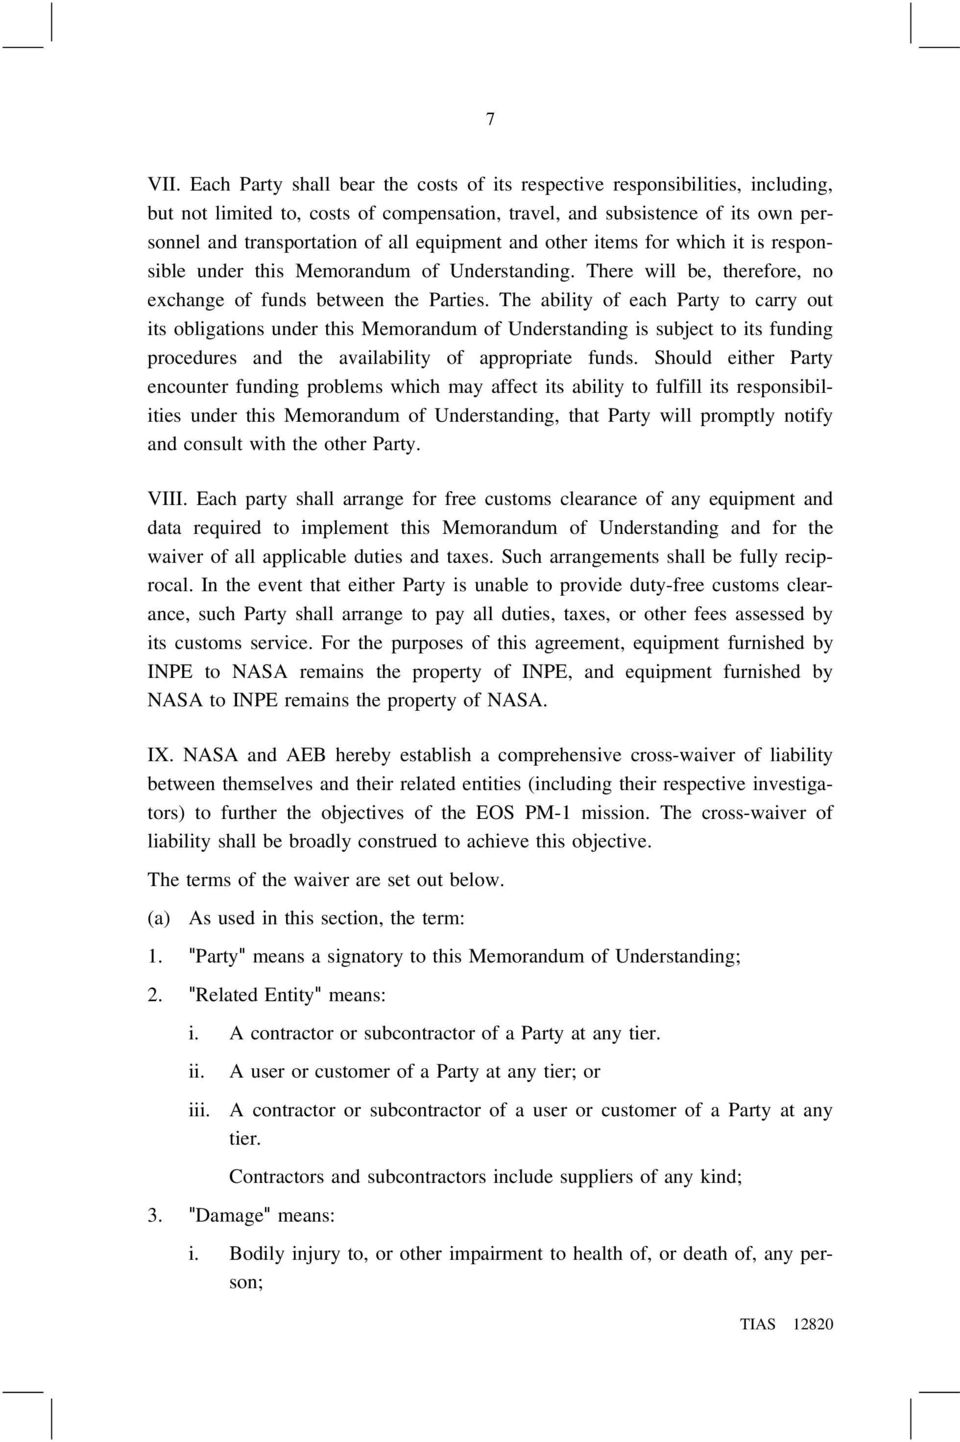 equipment and other items for which it is responsible under this Memorandum of Understanding. There will be, therefore, no exchange of funds between the Parties.